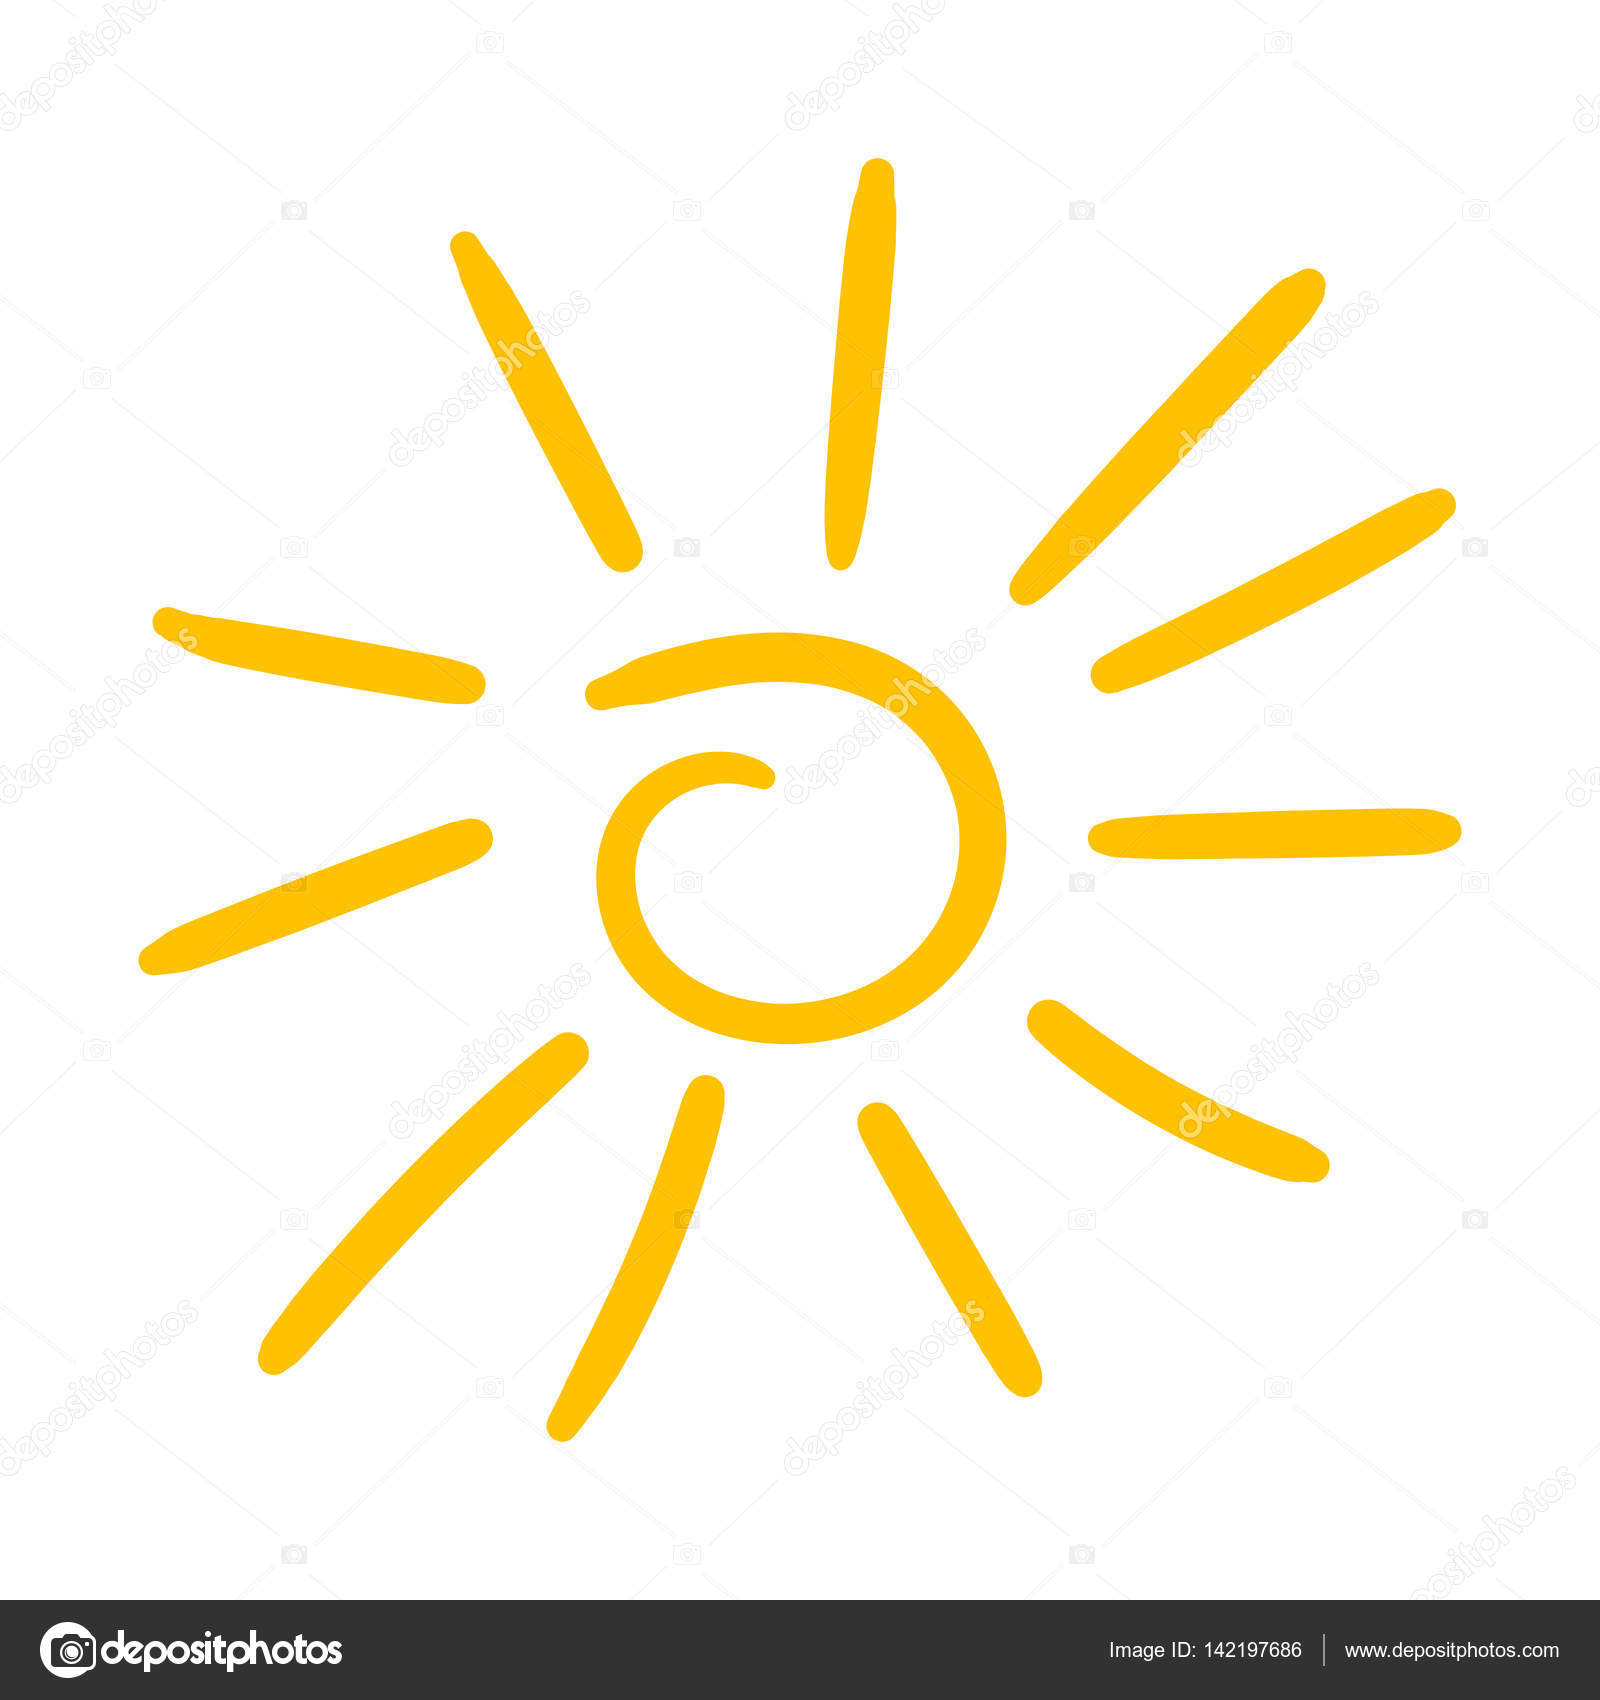 Hand drawn sun icon  Vector illustration isolated on white